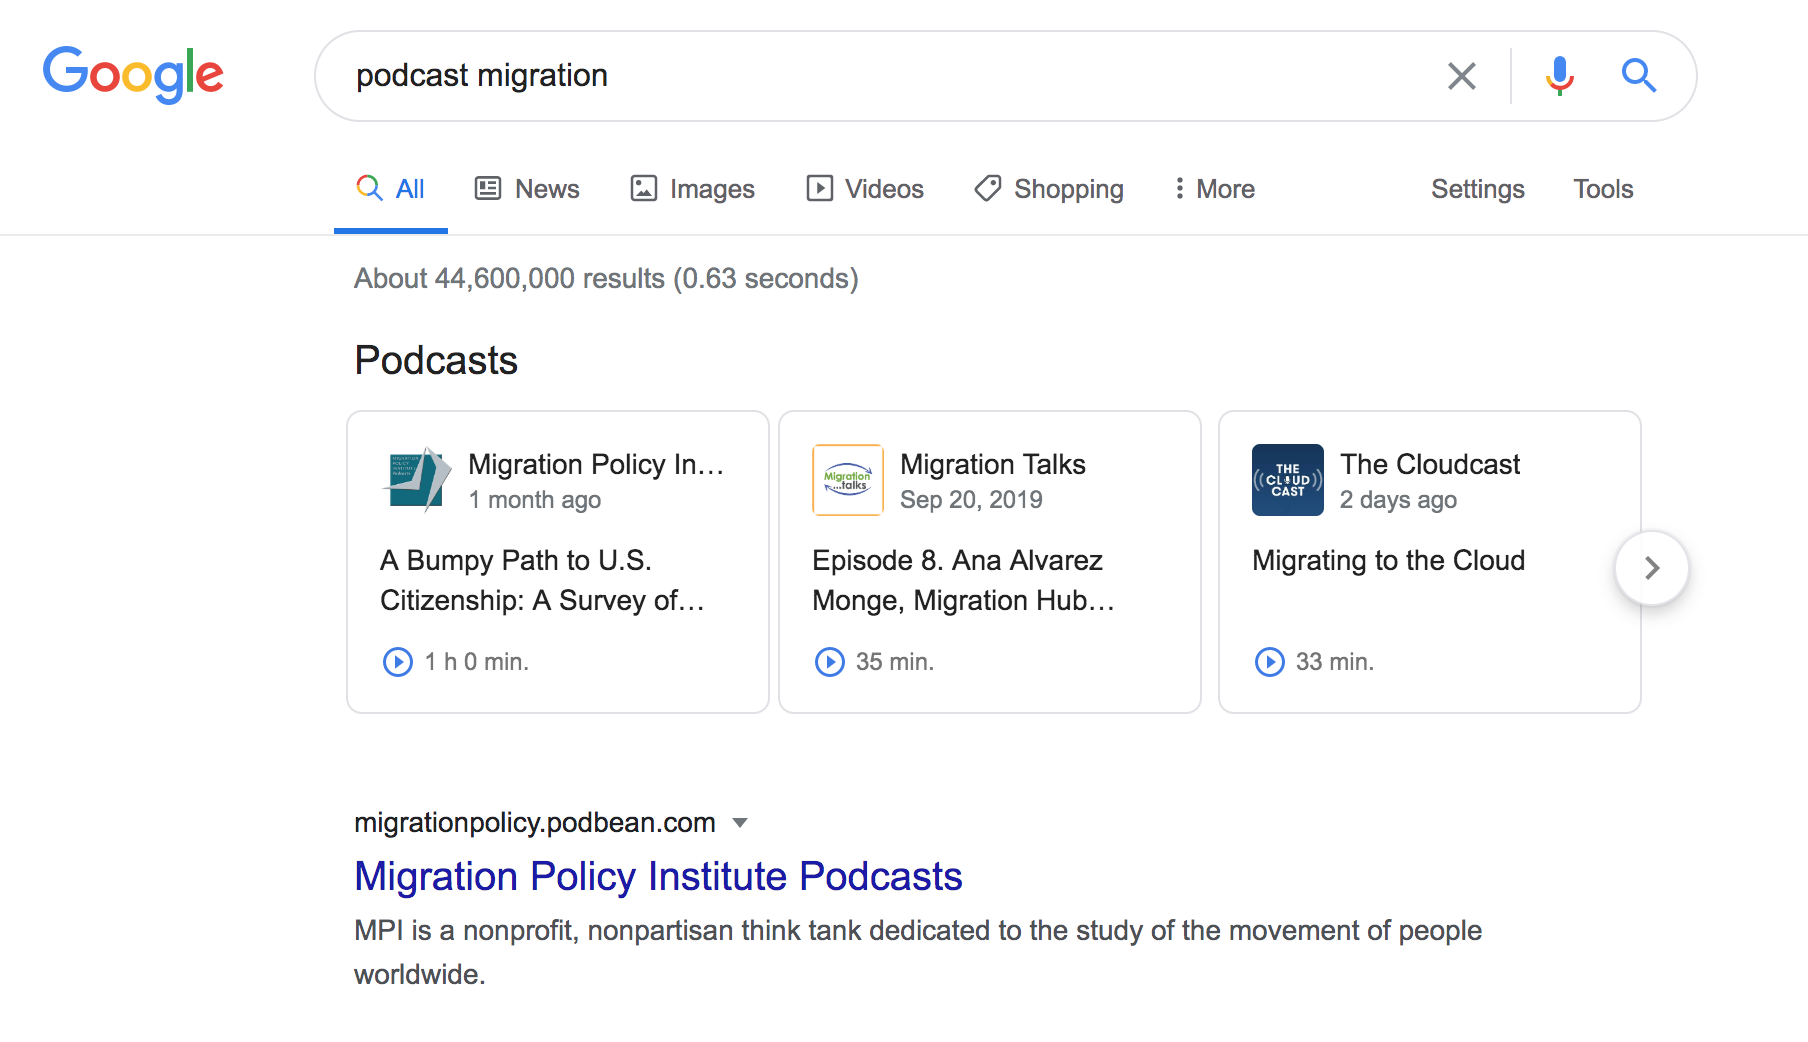 Screenshot of a Google search for podcasts on migration.